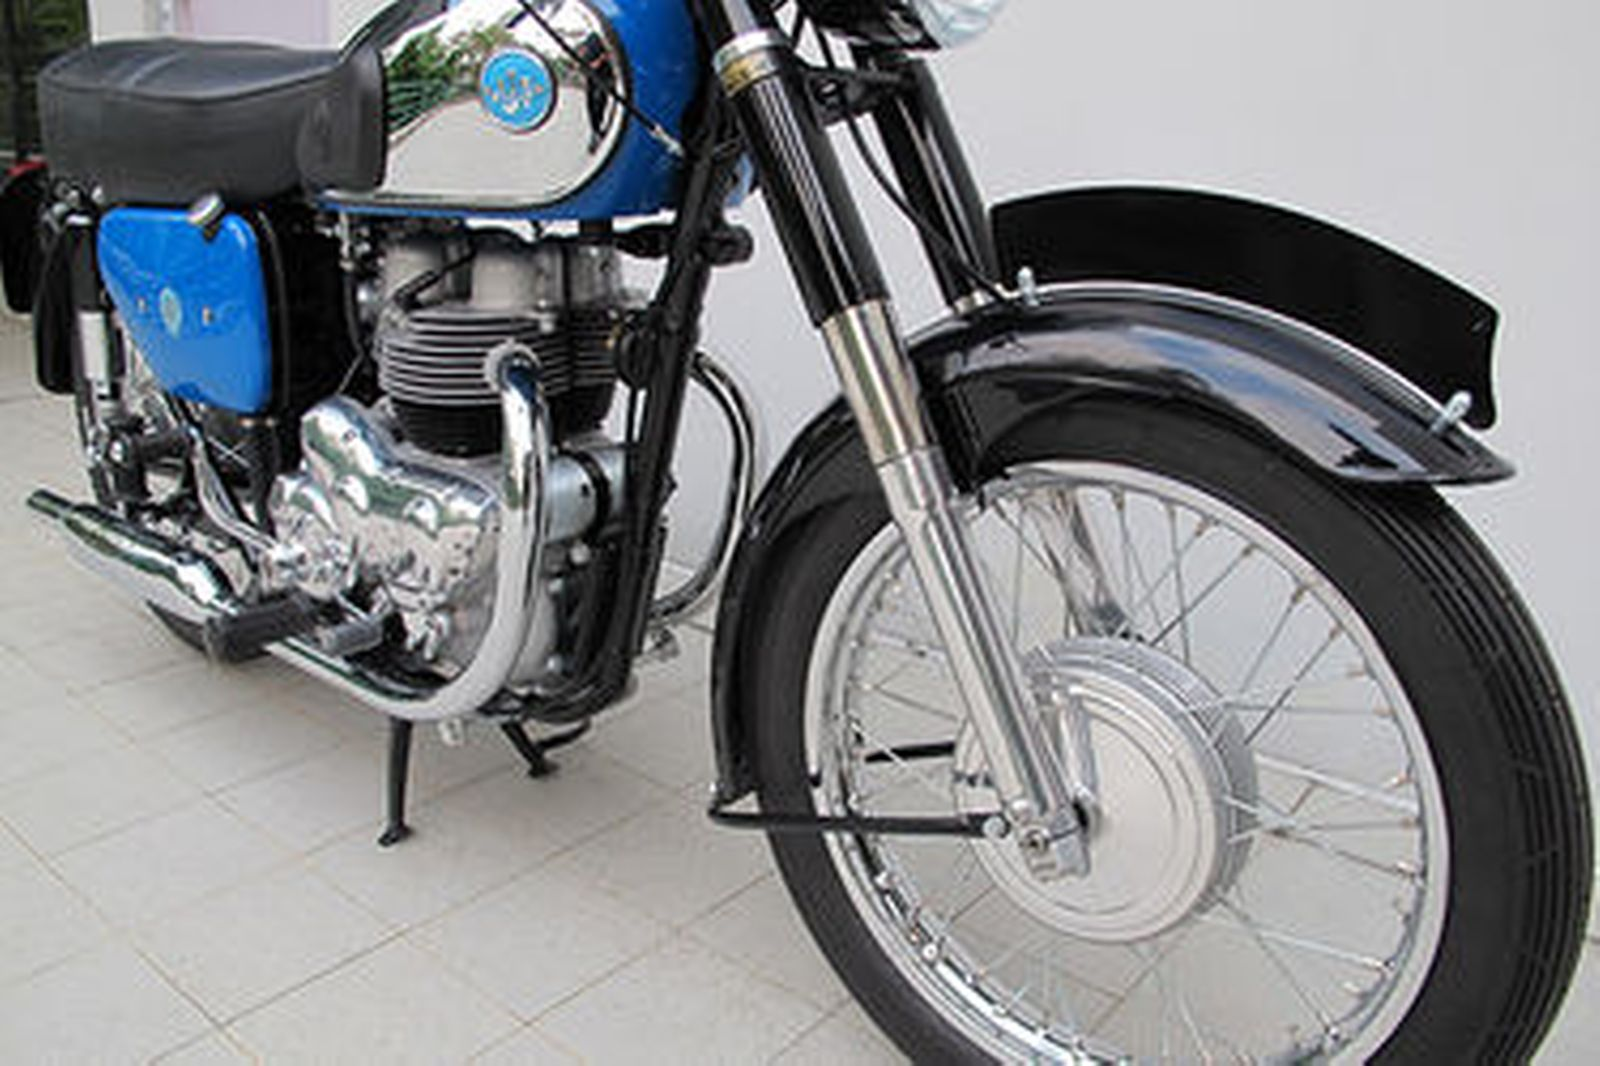 AJS Model 20 500cc Motorcycle